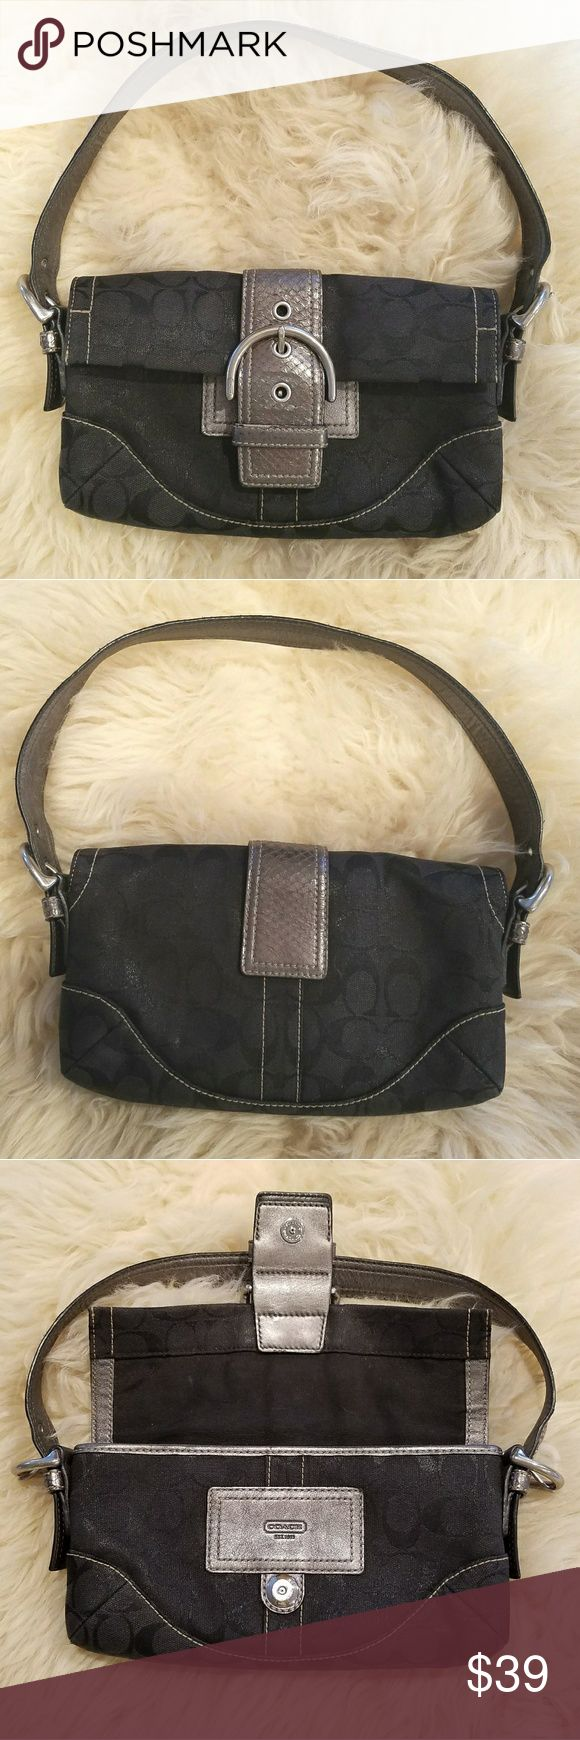 """Coach Signature Metallic Black & Grey Python Bag Small Coach Signature Black Metallic Jacquard Fabric bag with Python Snakeskin Trim. Some minor signs of use inside and out, shown in pics.  Offers welcome   Measurements (approx): 10"""" w x 6.5"""" h, handle drop 7"""" (adjustable) Coach Bags Shoulder Bags"""